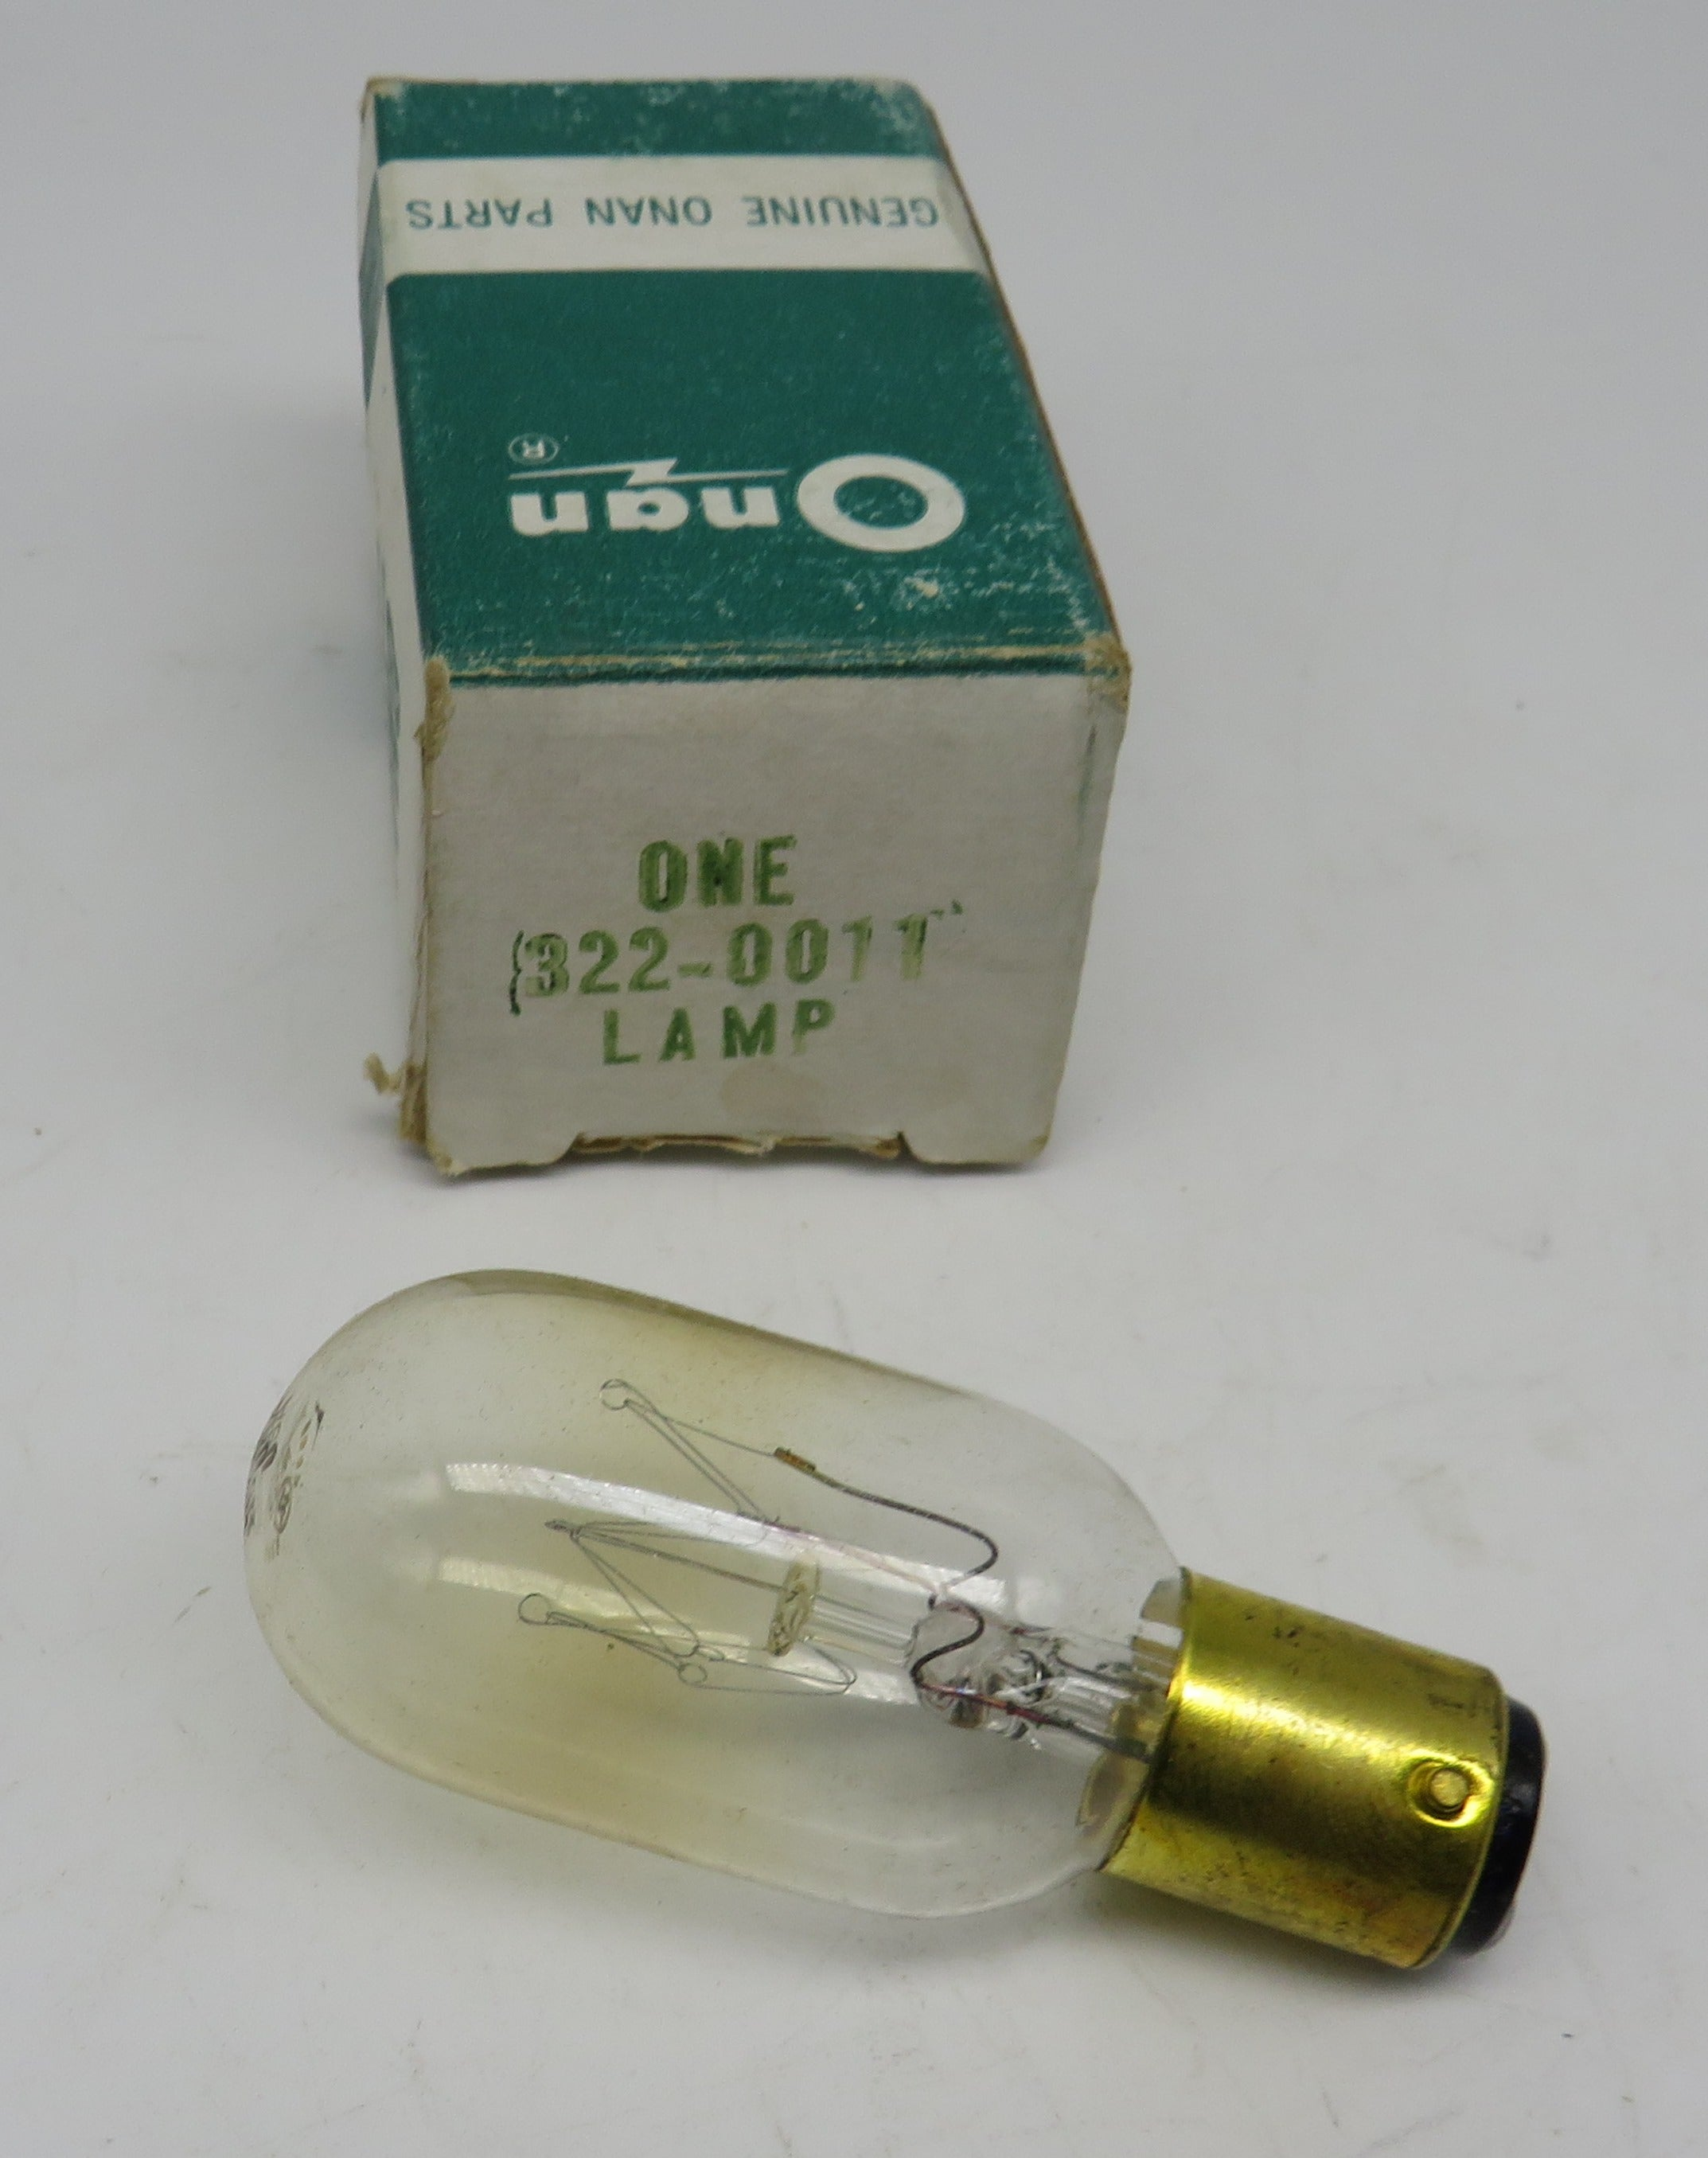 322-0011 Onan Lamp / Bulb 25 Watt 125 Volt Push Button